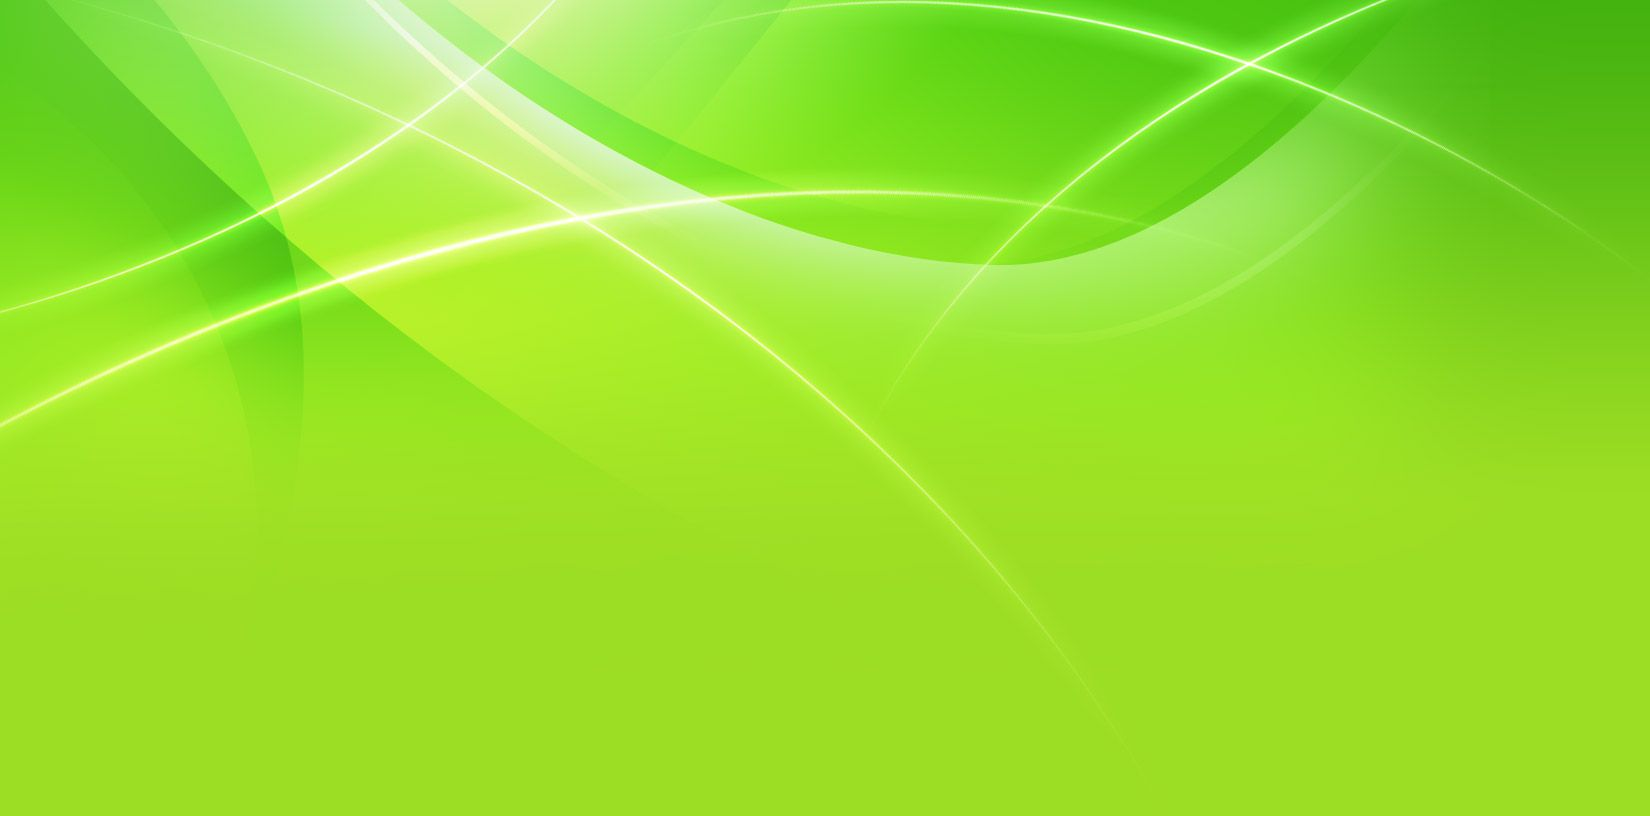 Green Background Awesome Img In High Definition 19Q in 2019.